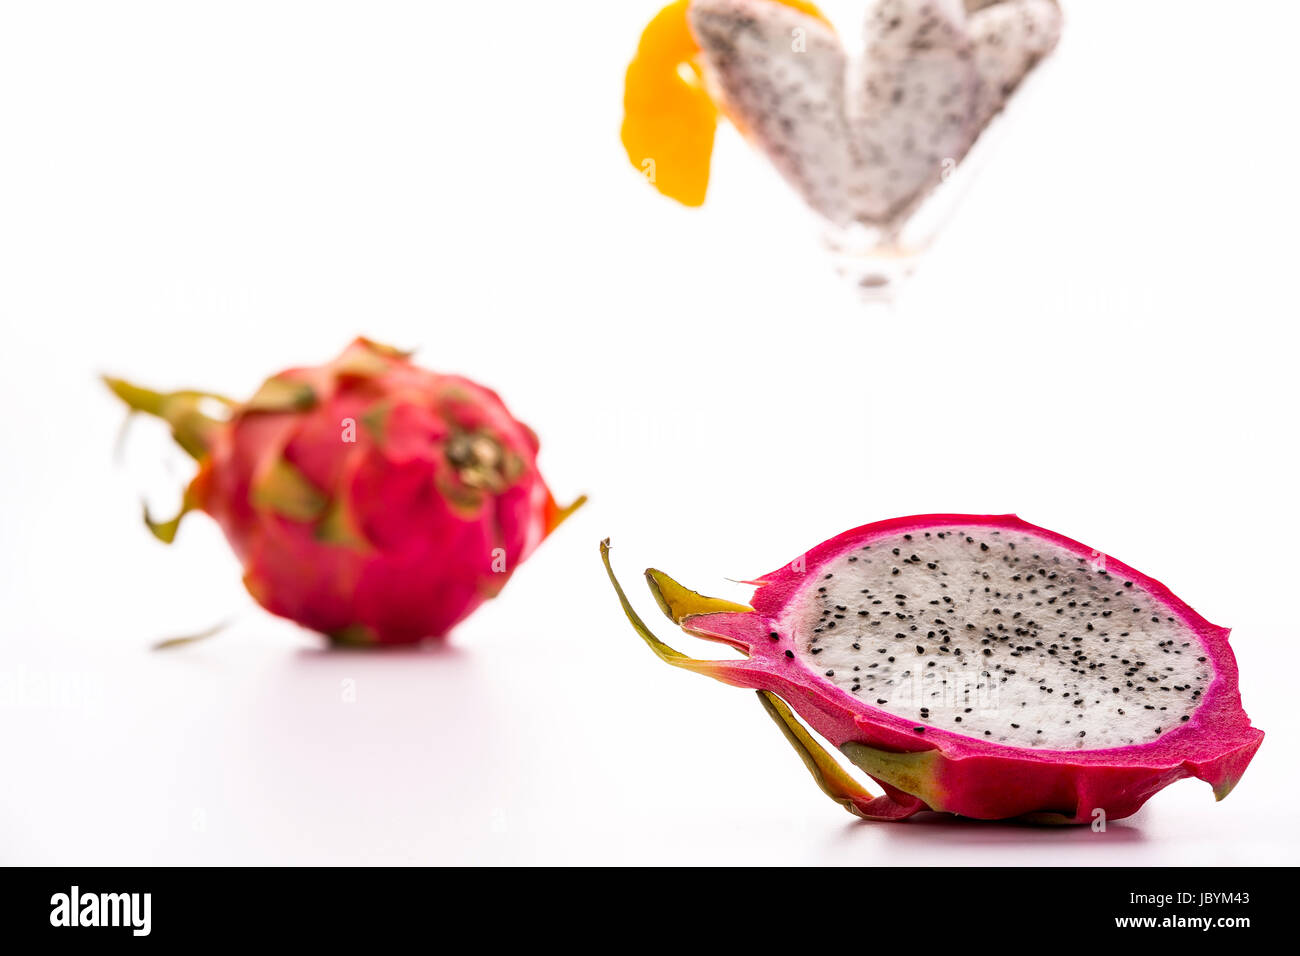 The blazing white and mildly aromatic pulp of the pitaya is suited for a quenching desert. Best served chilled. - Stock Image